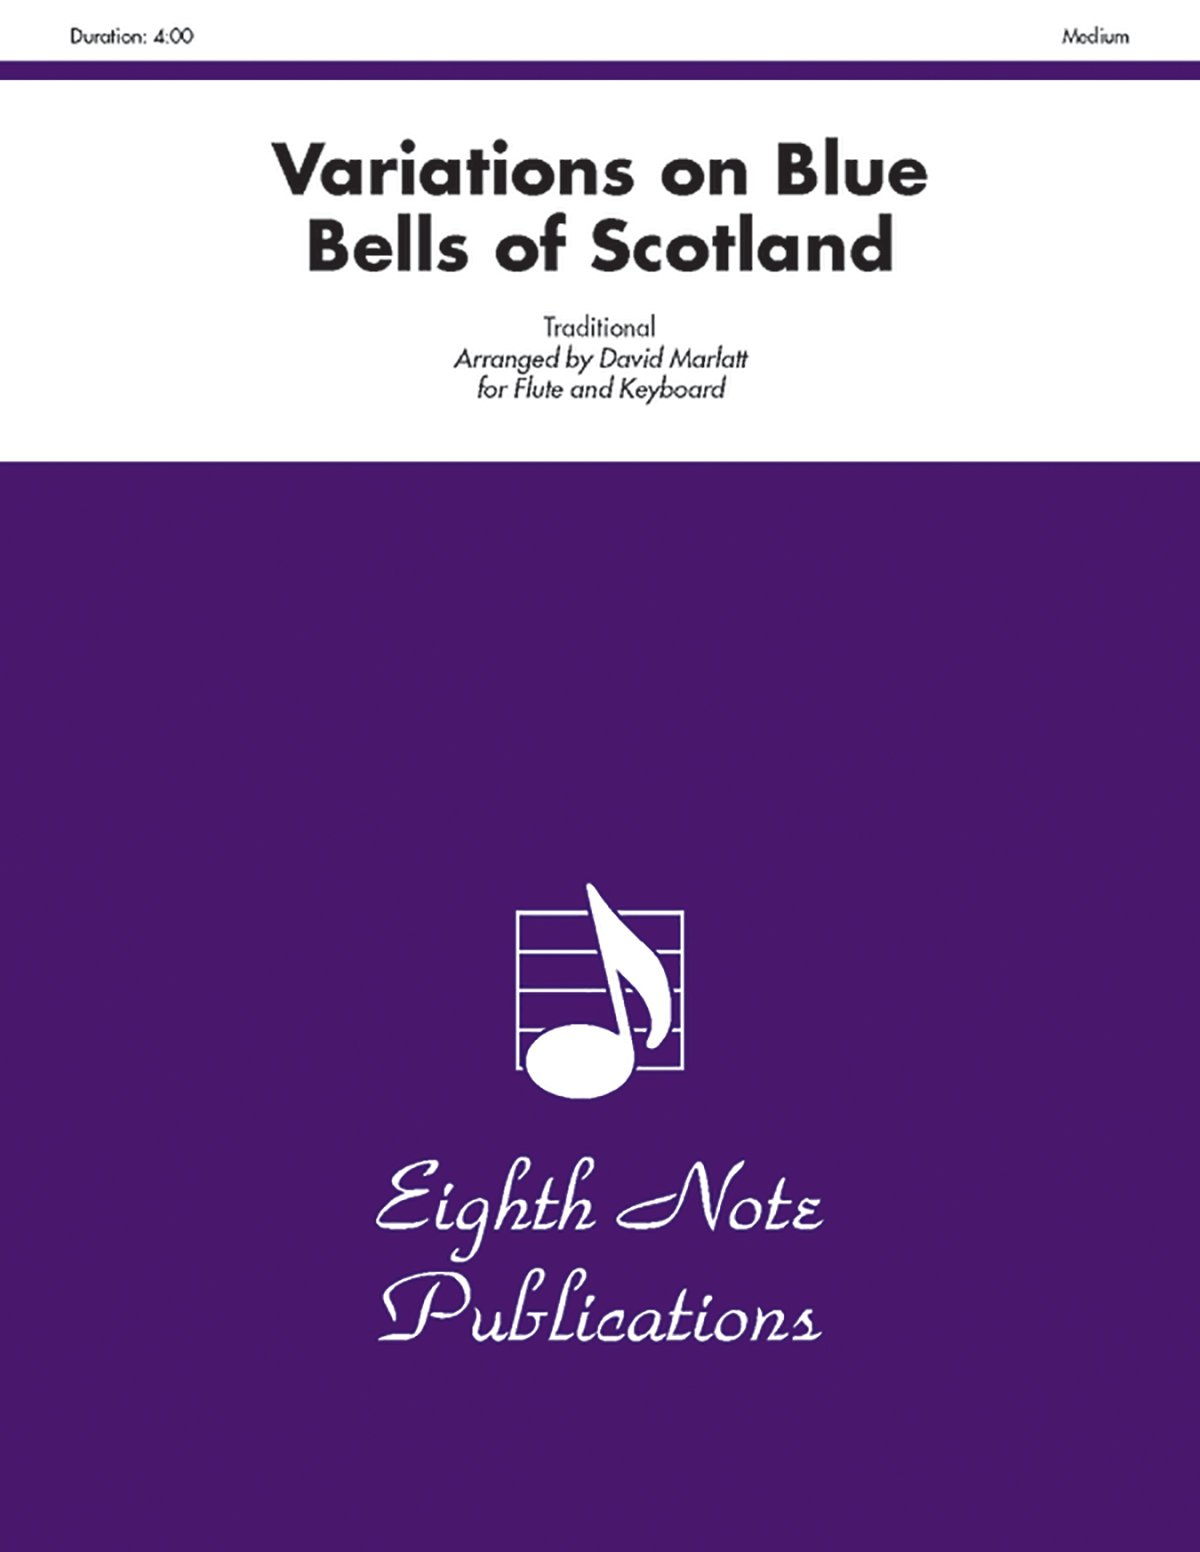 Download Variations on Blue Bells of Scotland: Part(s) (Eighth Note Publications) pdf